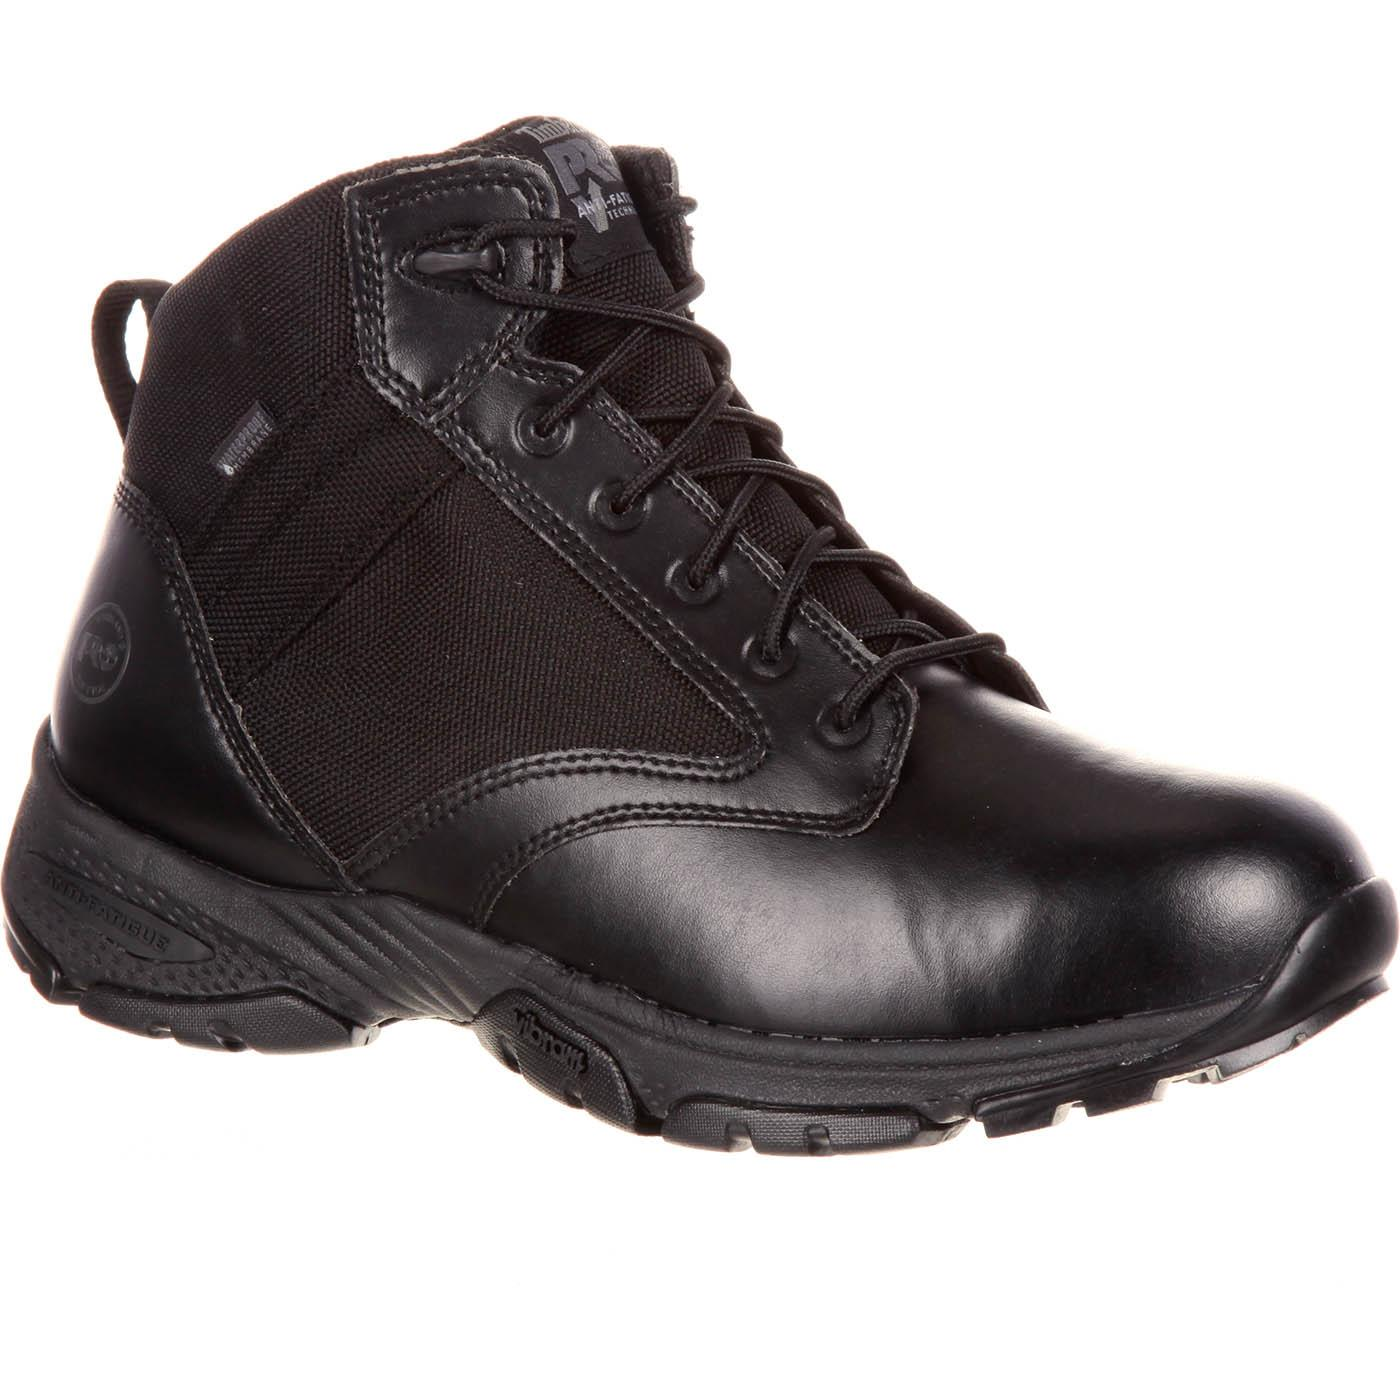 6c75e974716 Timberland PRO Valor Unisex Waterproof Tactical Duty Boot